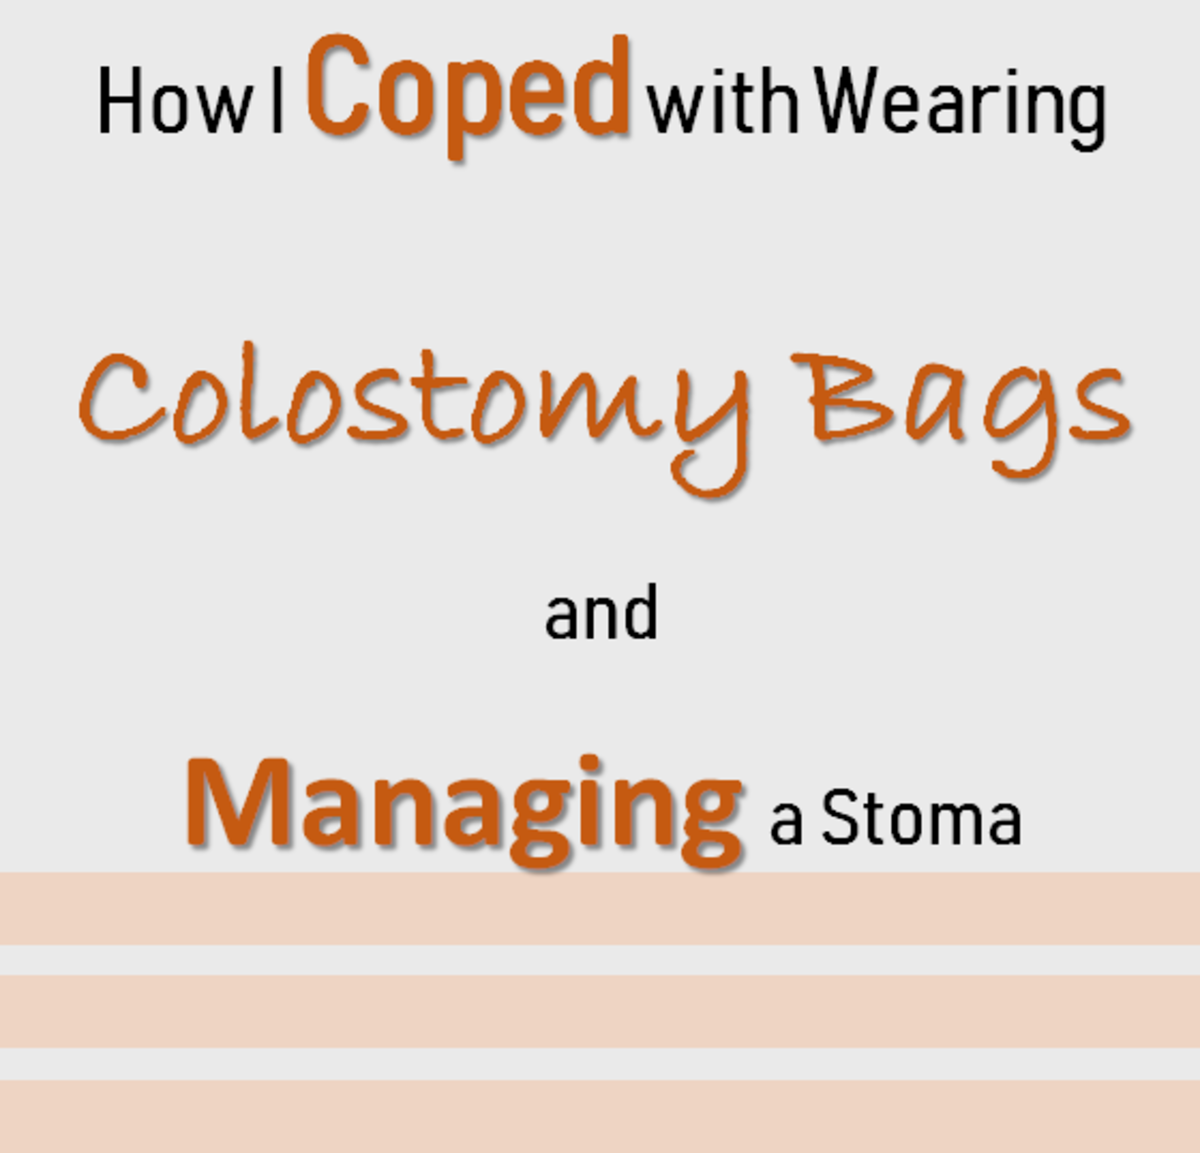 wearing-colostomy-bags-managing-a-stoma-for-12-months